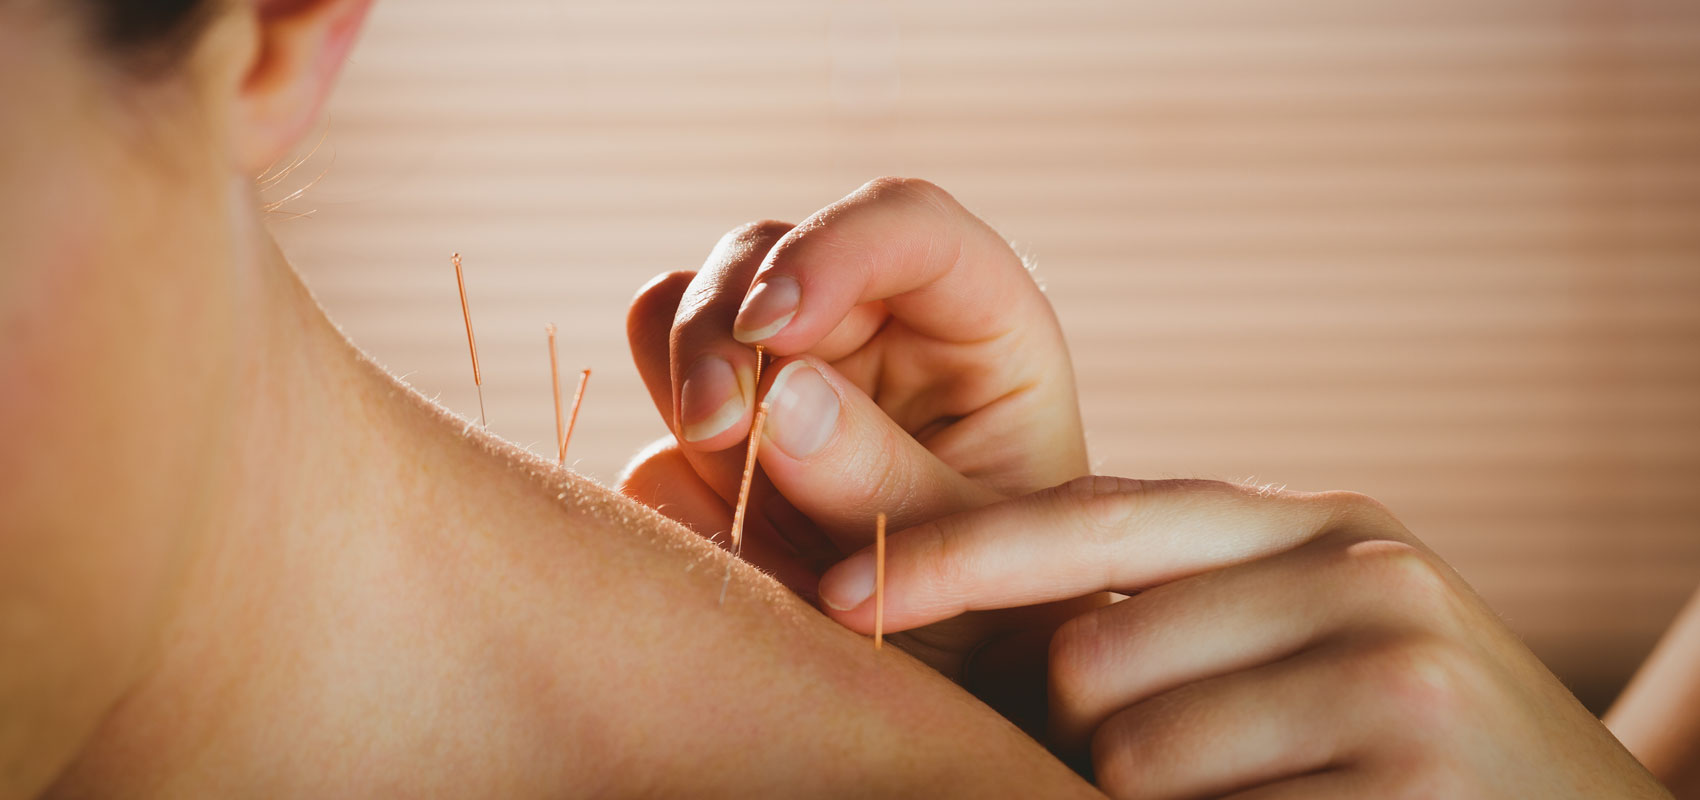 Acupuncture in Ottawa